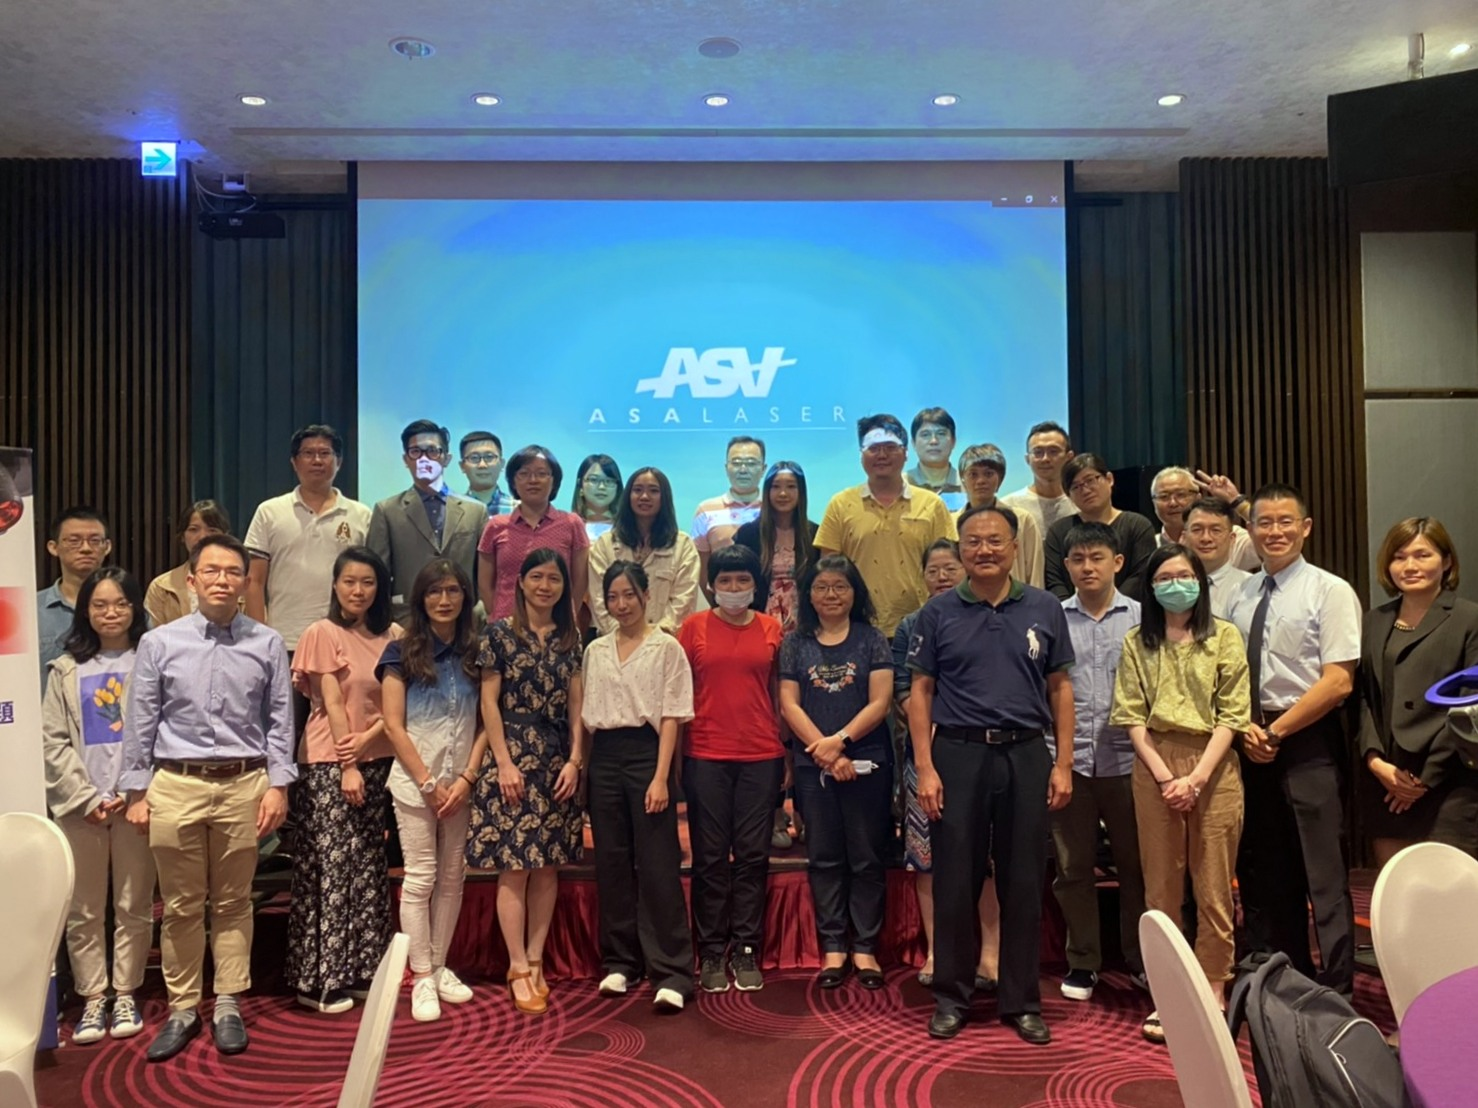 Taiwan - Workshop on ASA laser therapies, August 2020